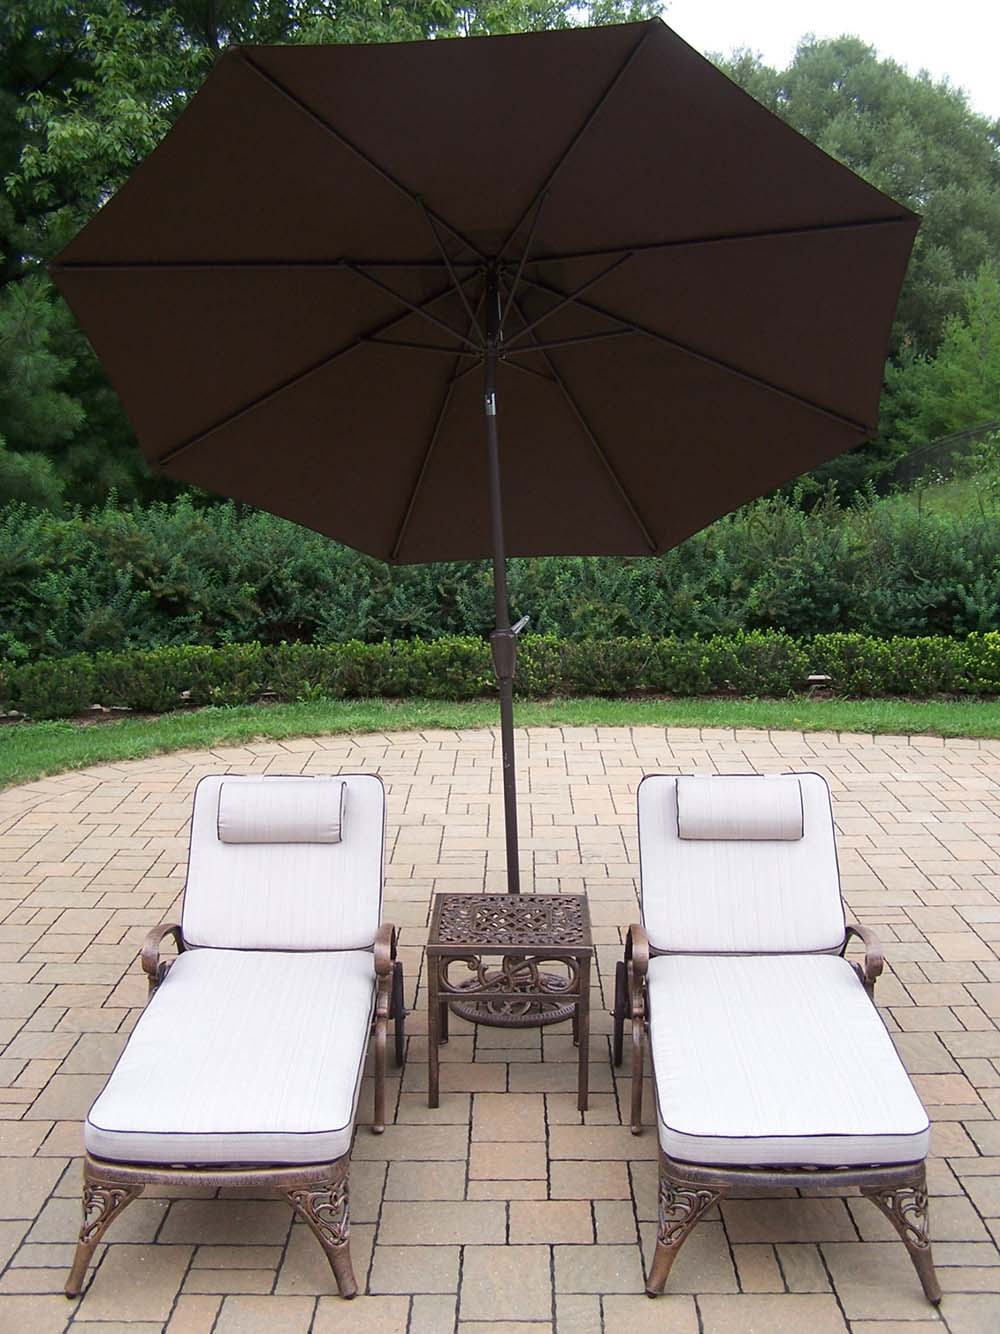 Popular Mississippi Chaise Lounge Table Umbrella Stand Product Photo